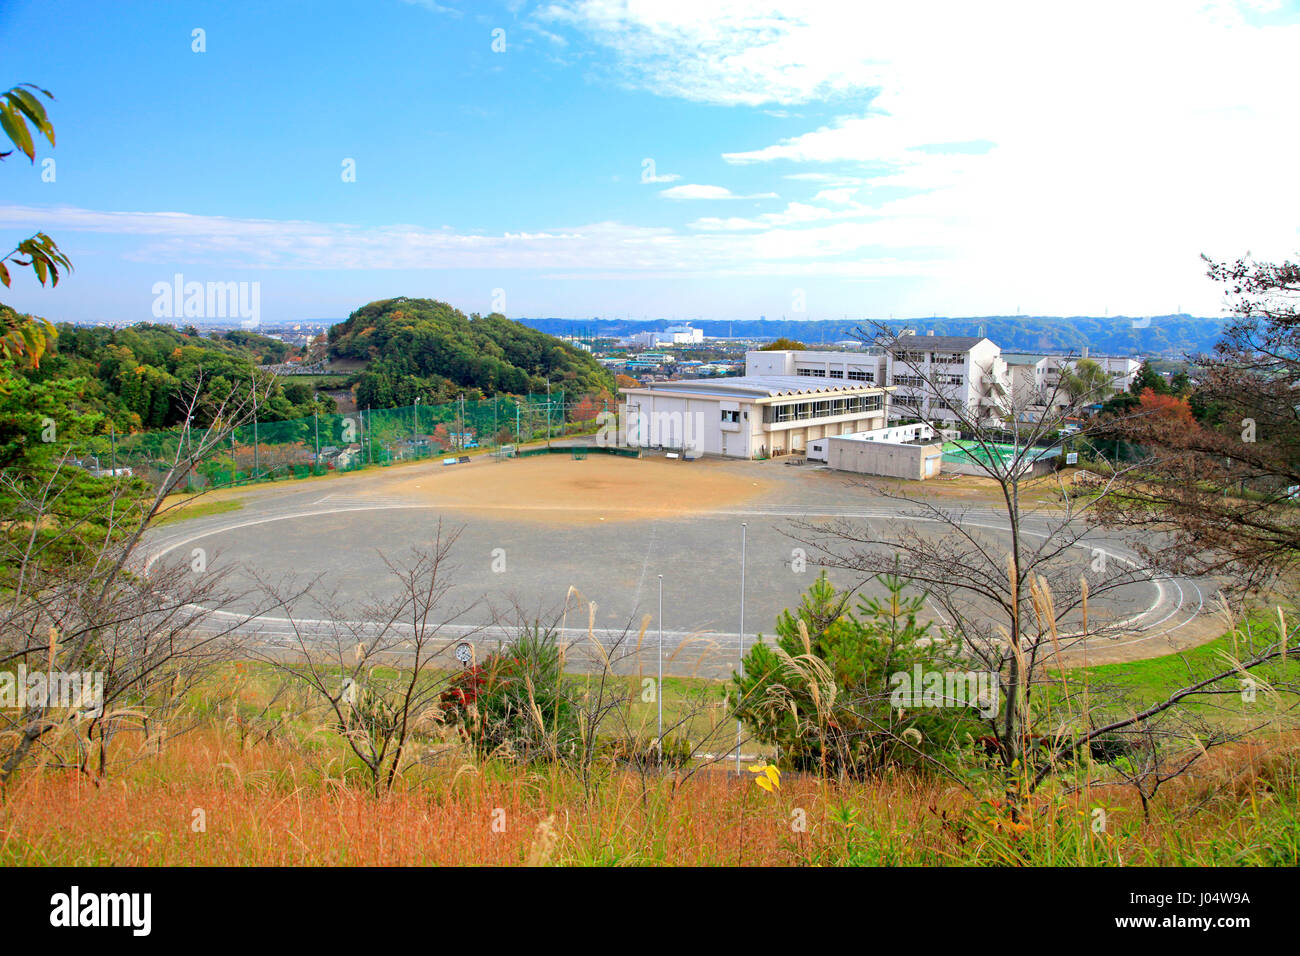 Hirai Junior High School Where the US President Ronald Reagan's Helicopter Landed for a Meeting with the Prime - Stock Image